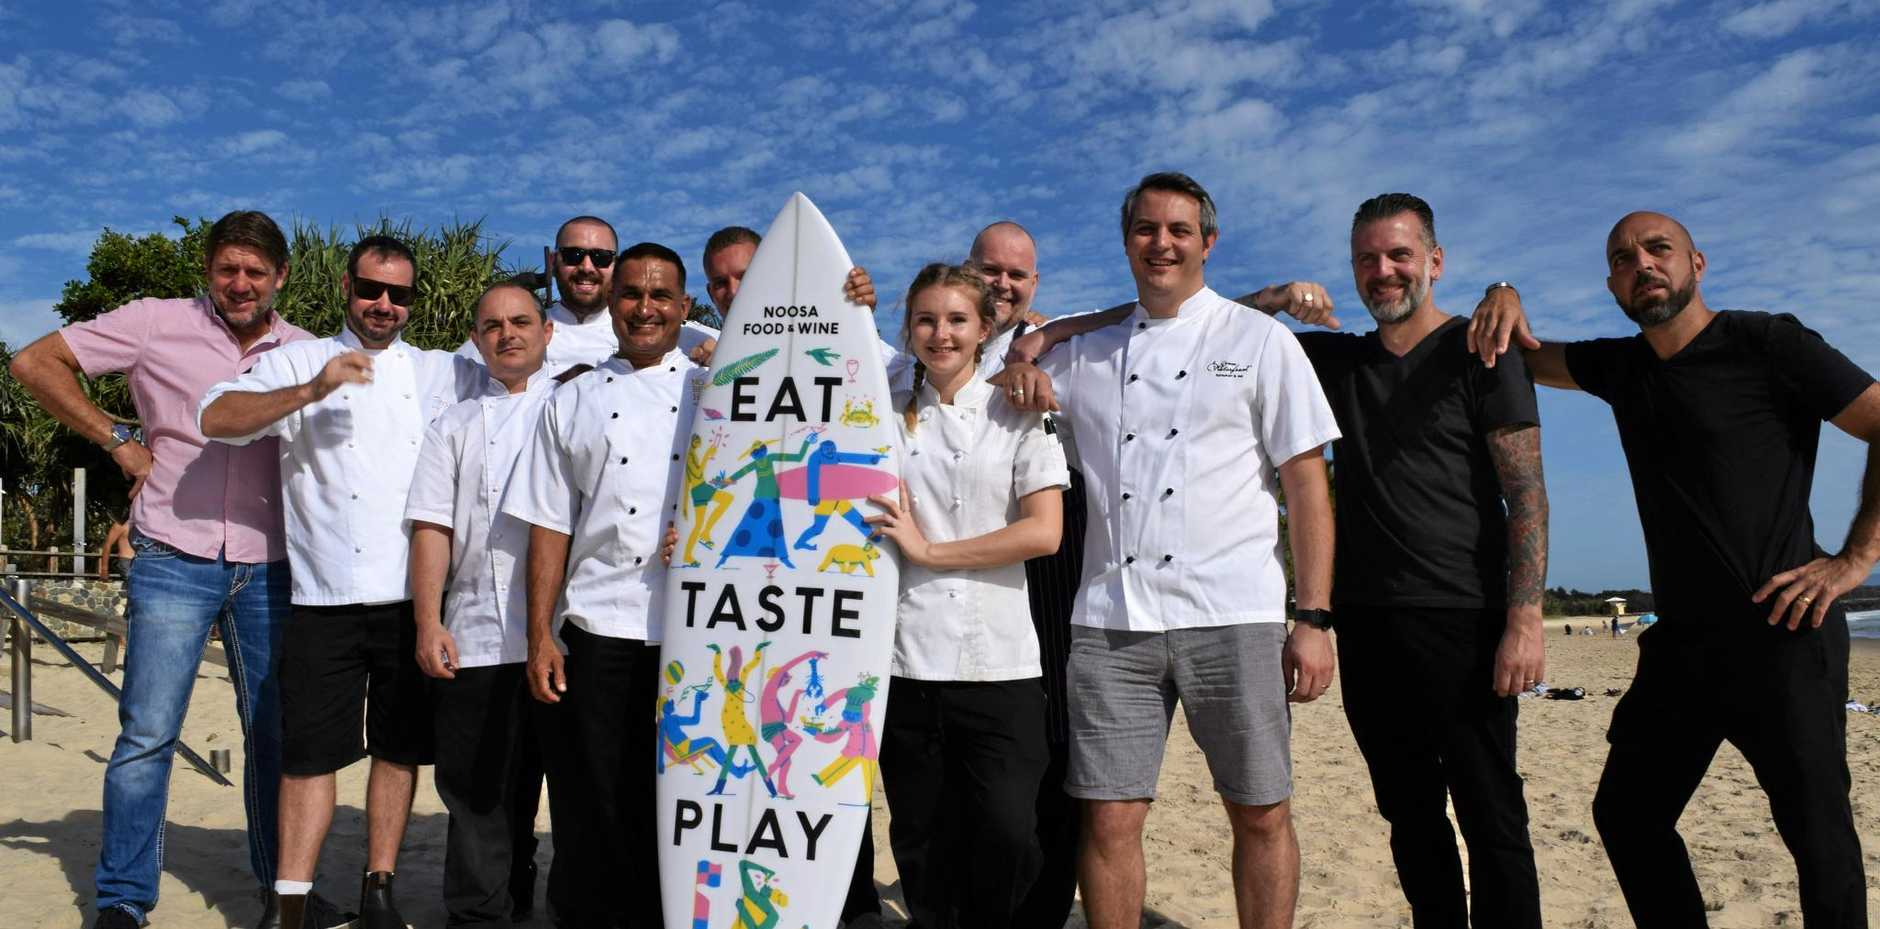 TIME TO DINE: Local chefs are gearing up for this year's Noosa Food and Wine festival.